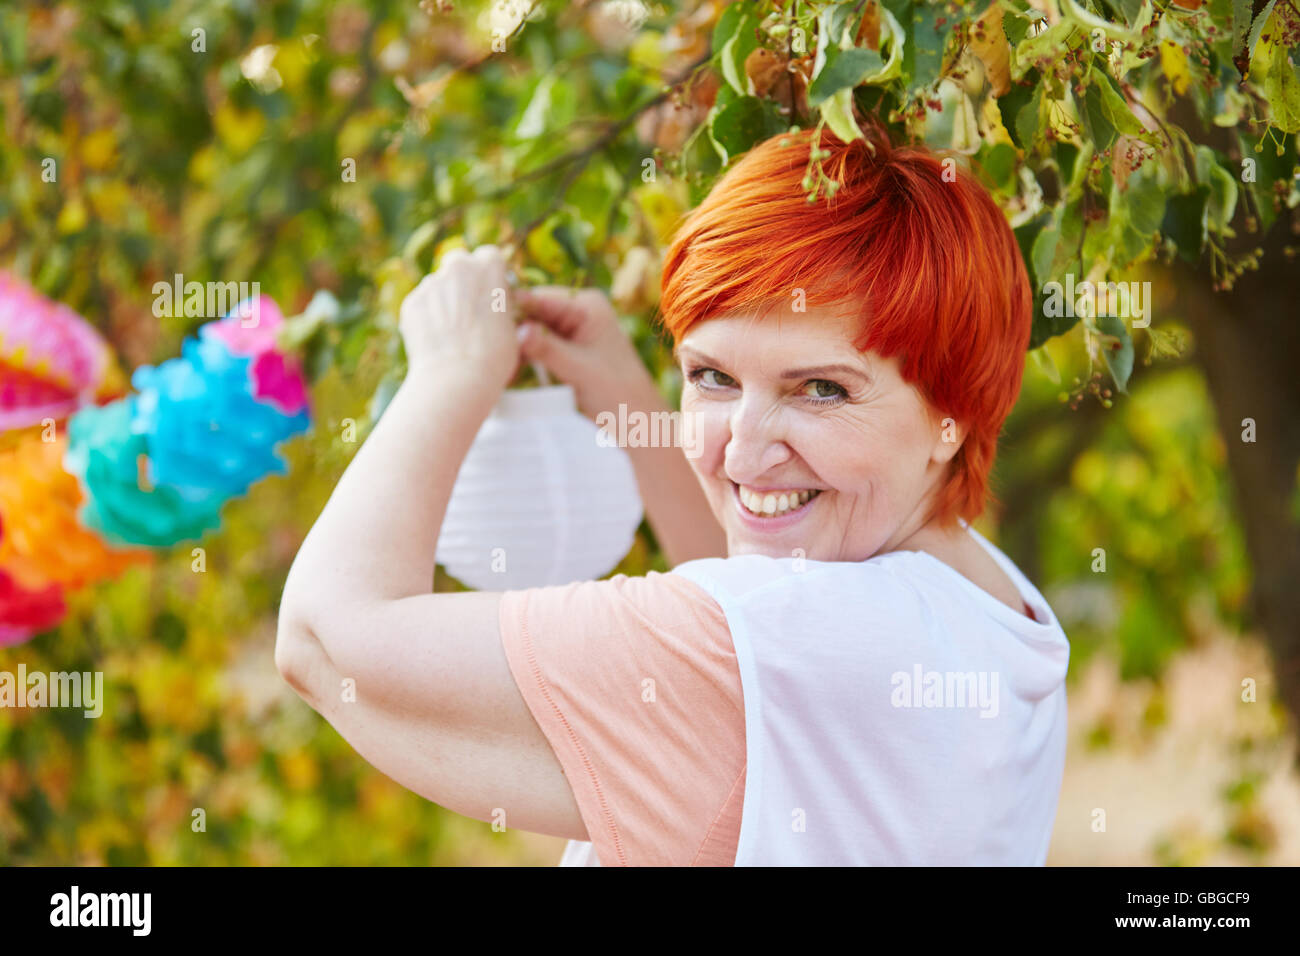 Senior woman decorating for a party in the park - Stock Image